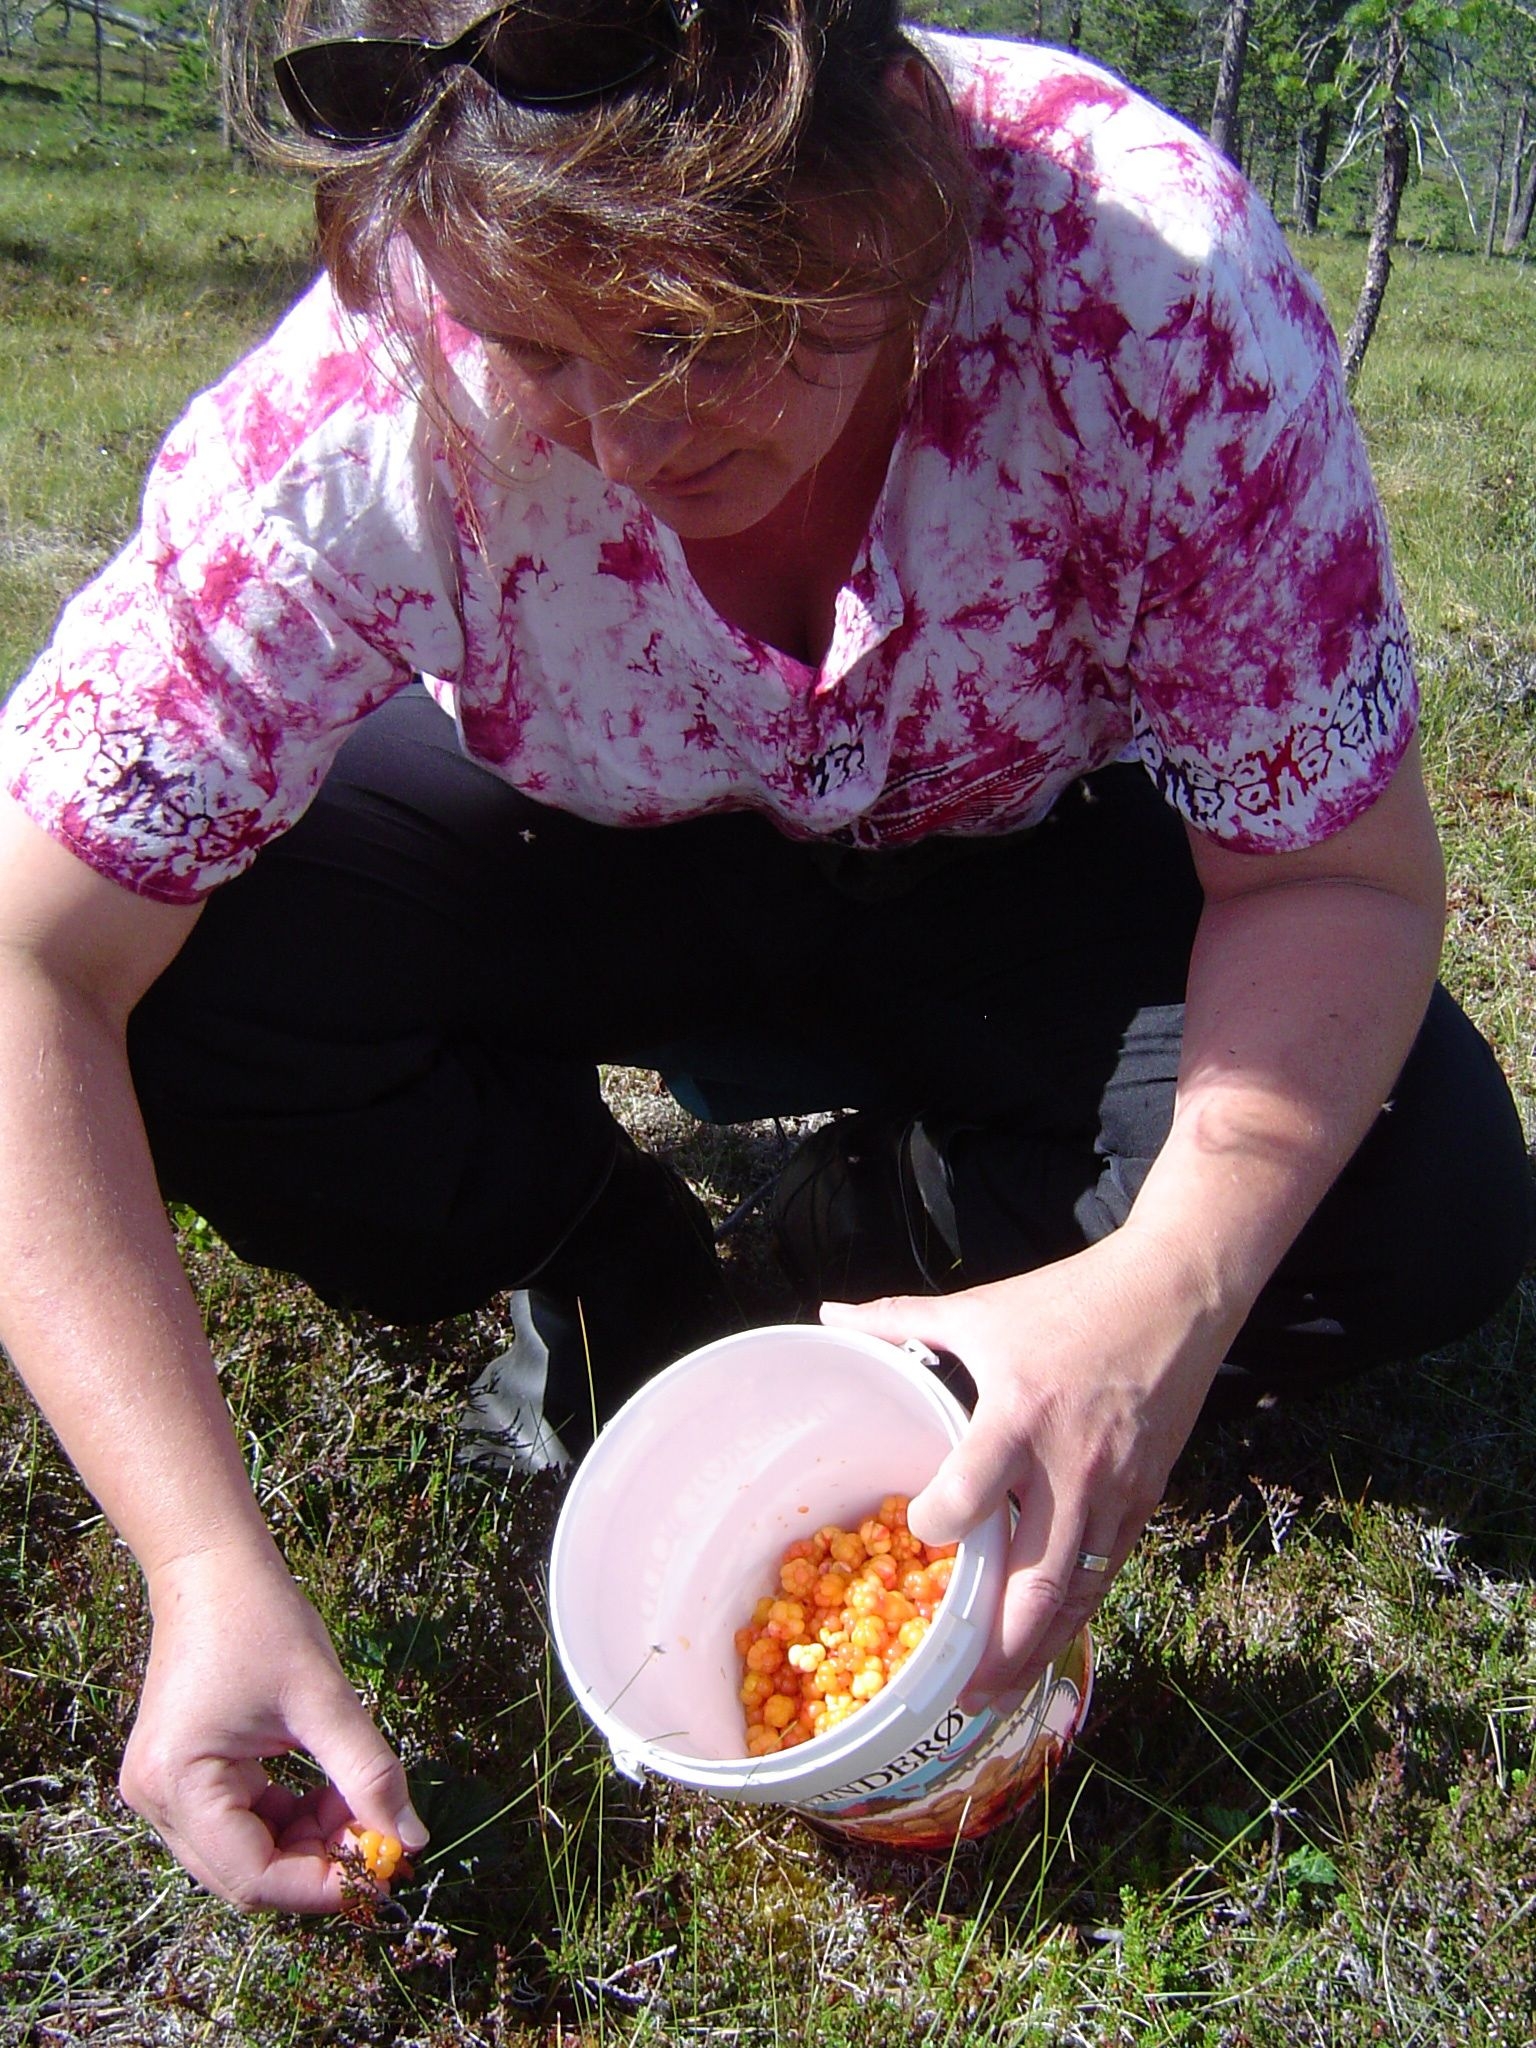 Heidi carefully picks ripe multe to store for the upcoming winter. Photo: Heidi Håvan Grosch